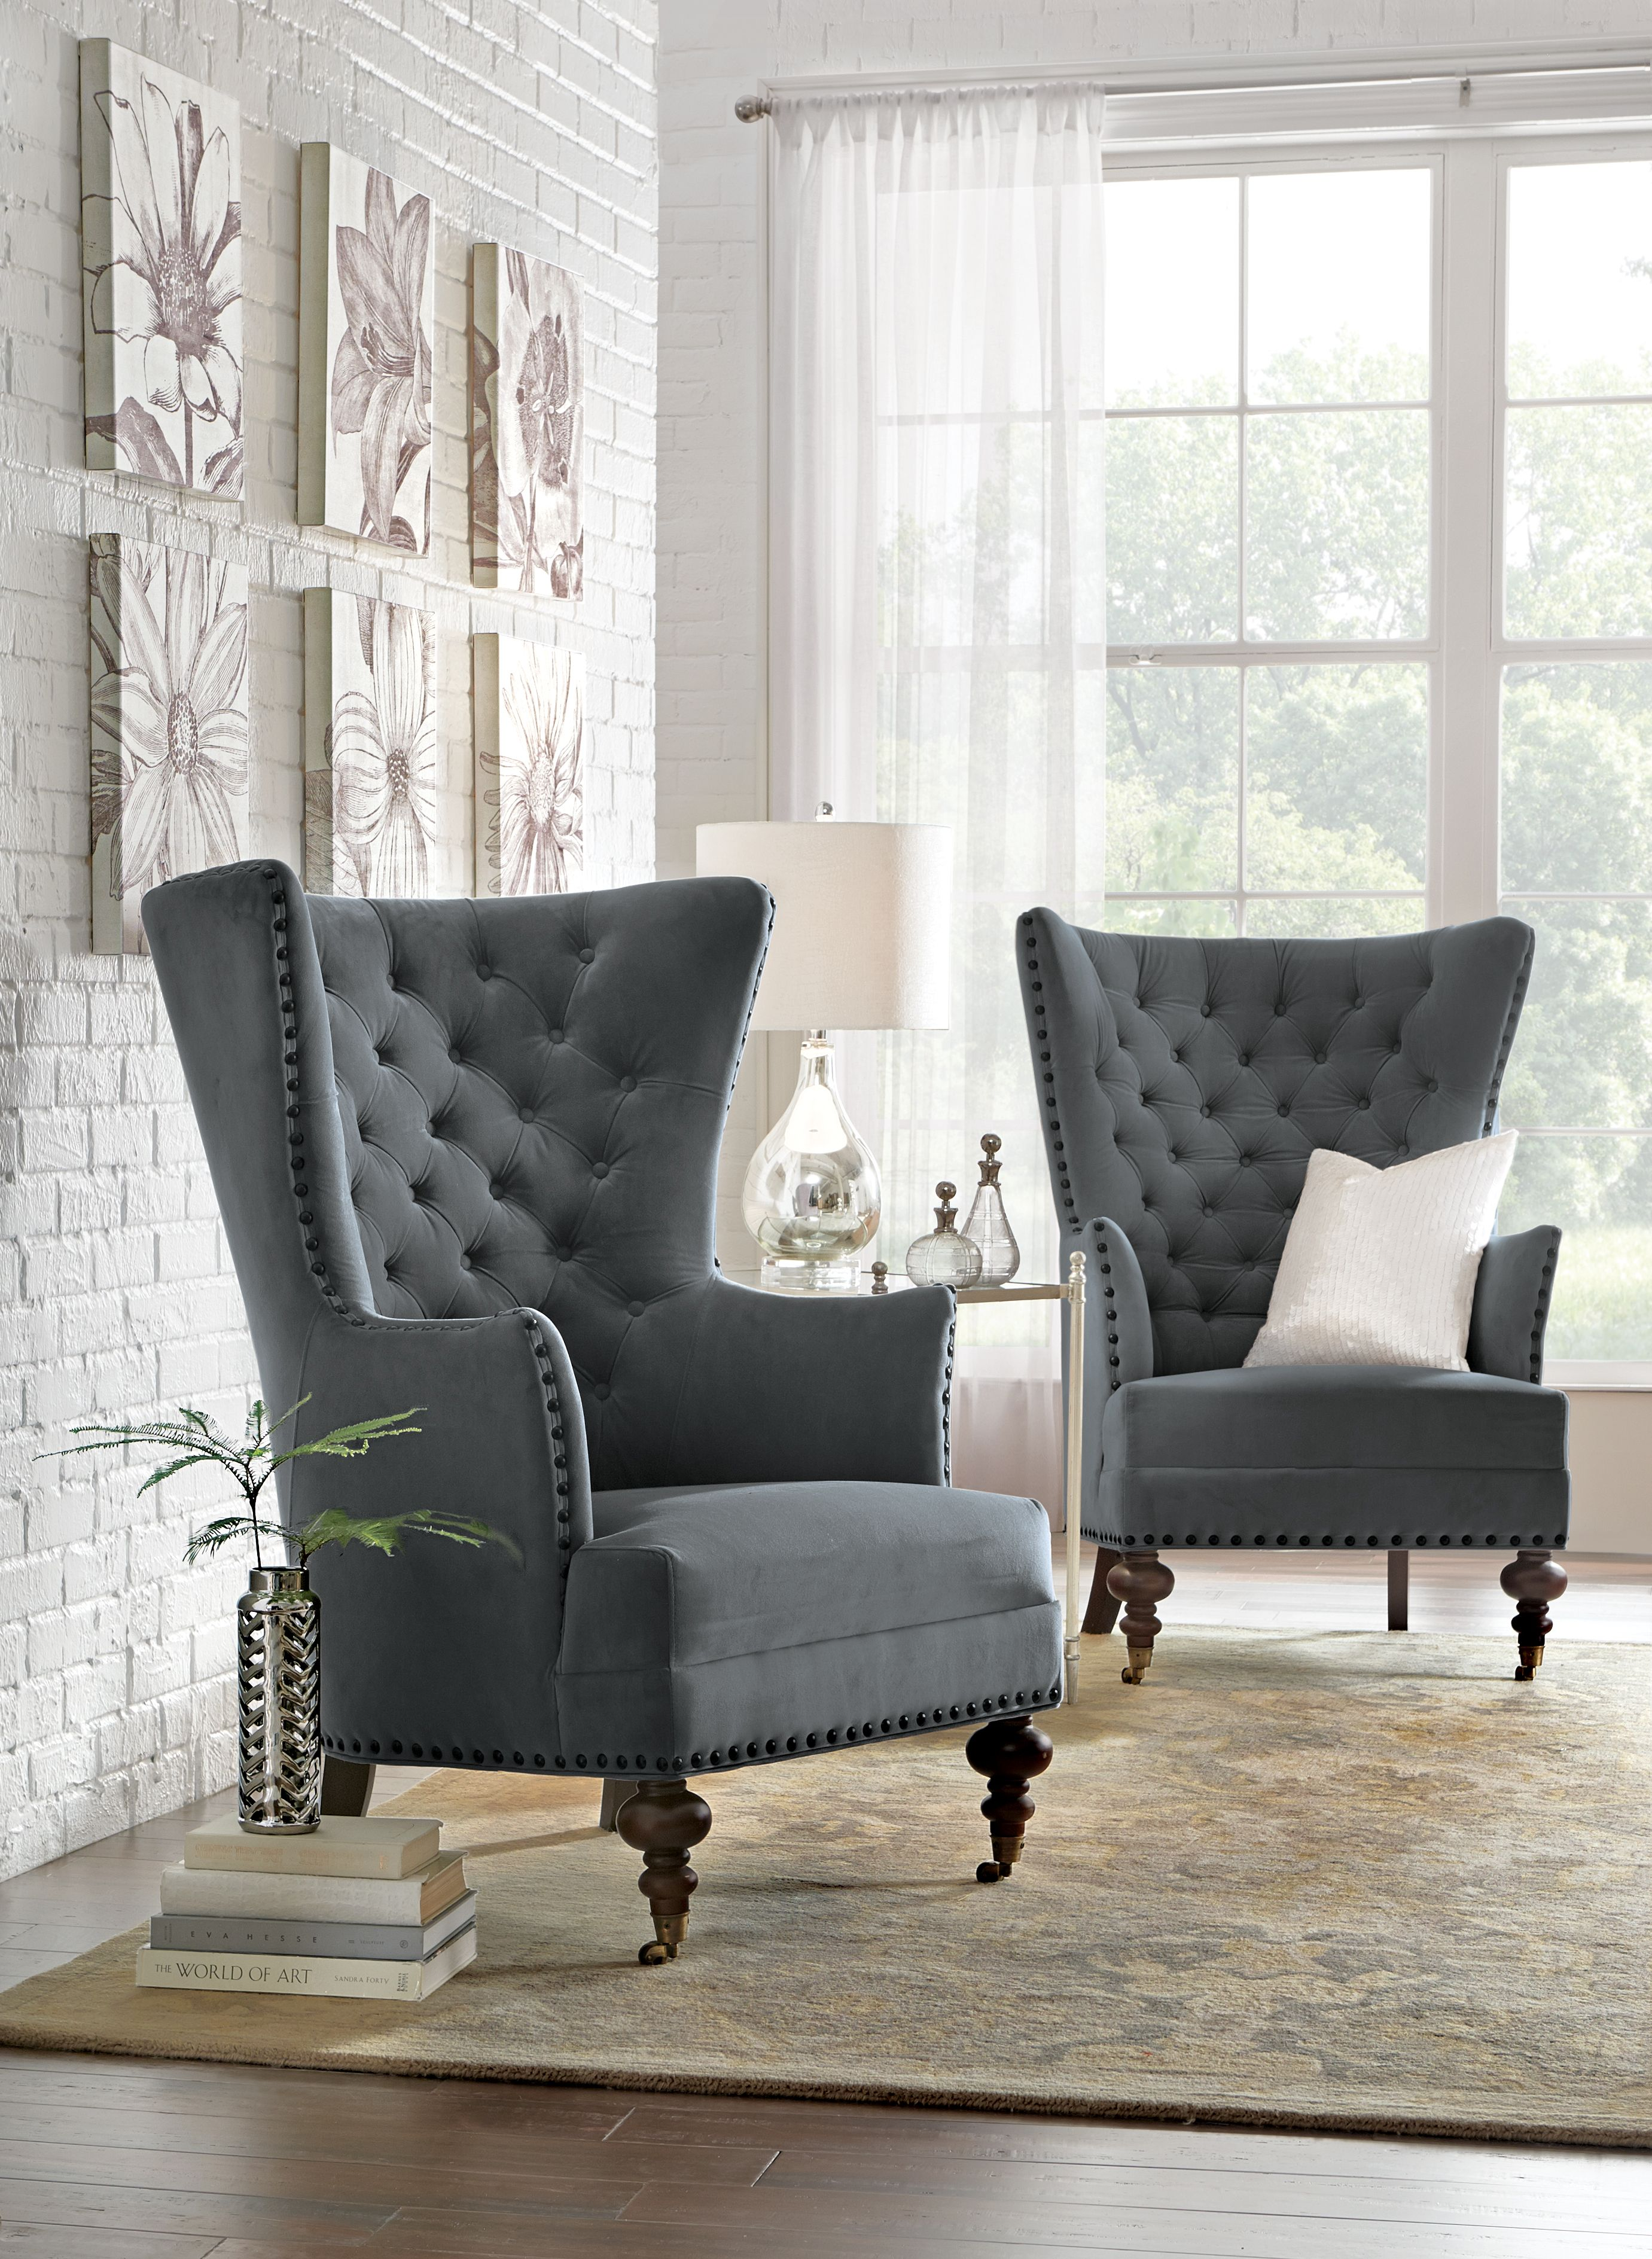 Remmy Club Chair Armchairs Accent Chairs Upholstered Chairs Tufted Chairs Home Living Room Living Room Chairs Accent Chairs For Living Room